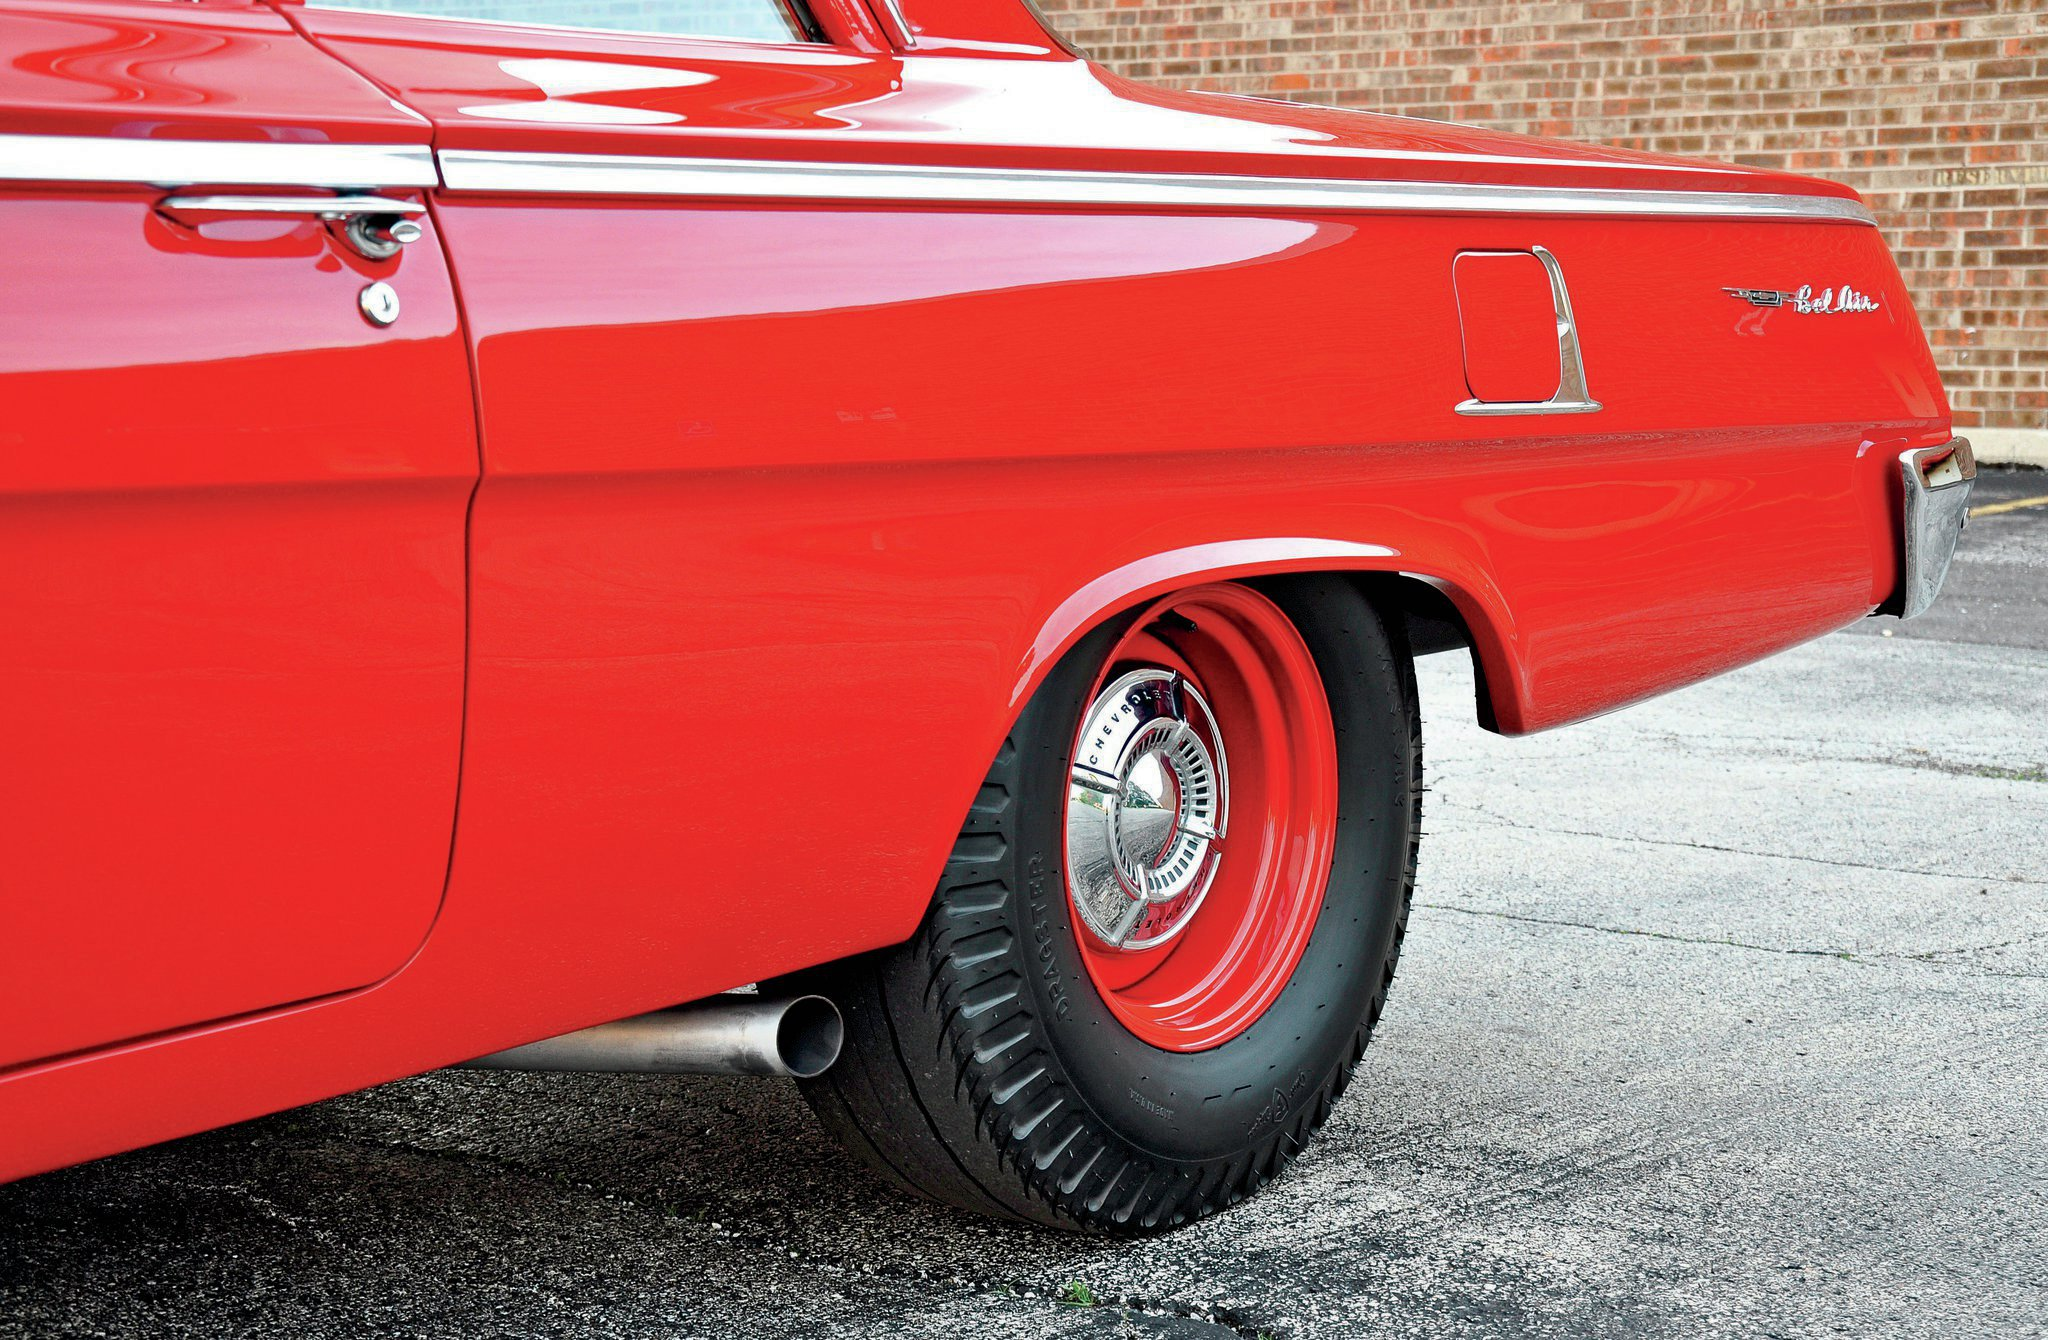 The Positraction axle cost $43.05. Bill's car comes with the 4.11 gears. Coker Tires Firestone cheater slicks are period perfect, especially mounted on proper 15x8 steel rims from Wheel Vintiques. The gas door trim was a Chevrolet accessory item.